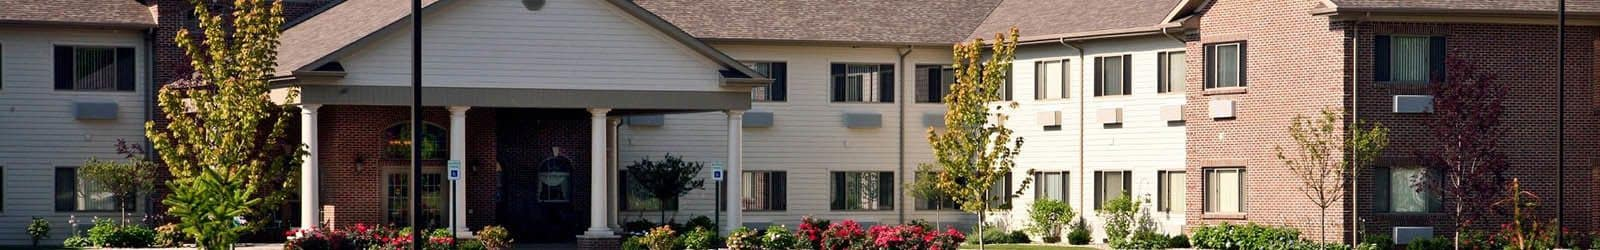 Senior living community in Valparaiso, IN